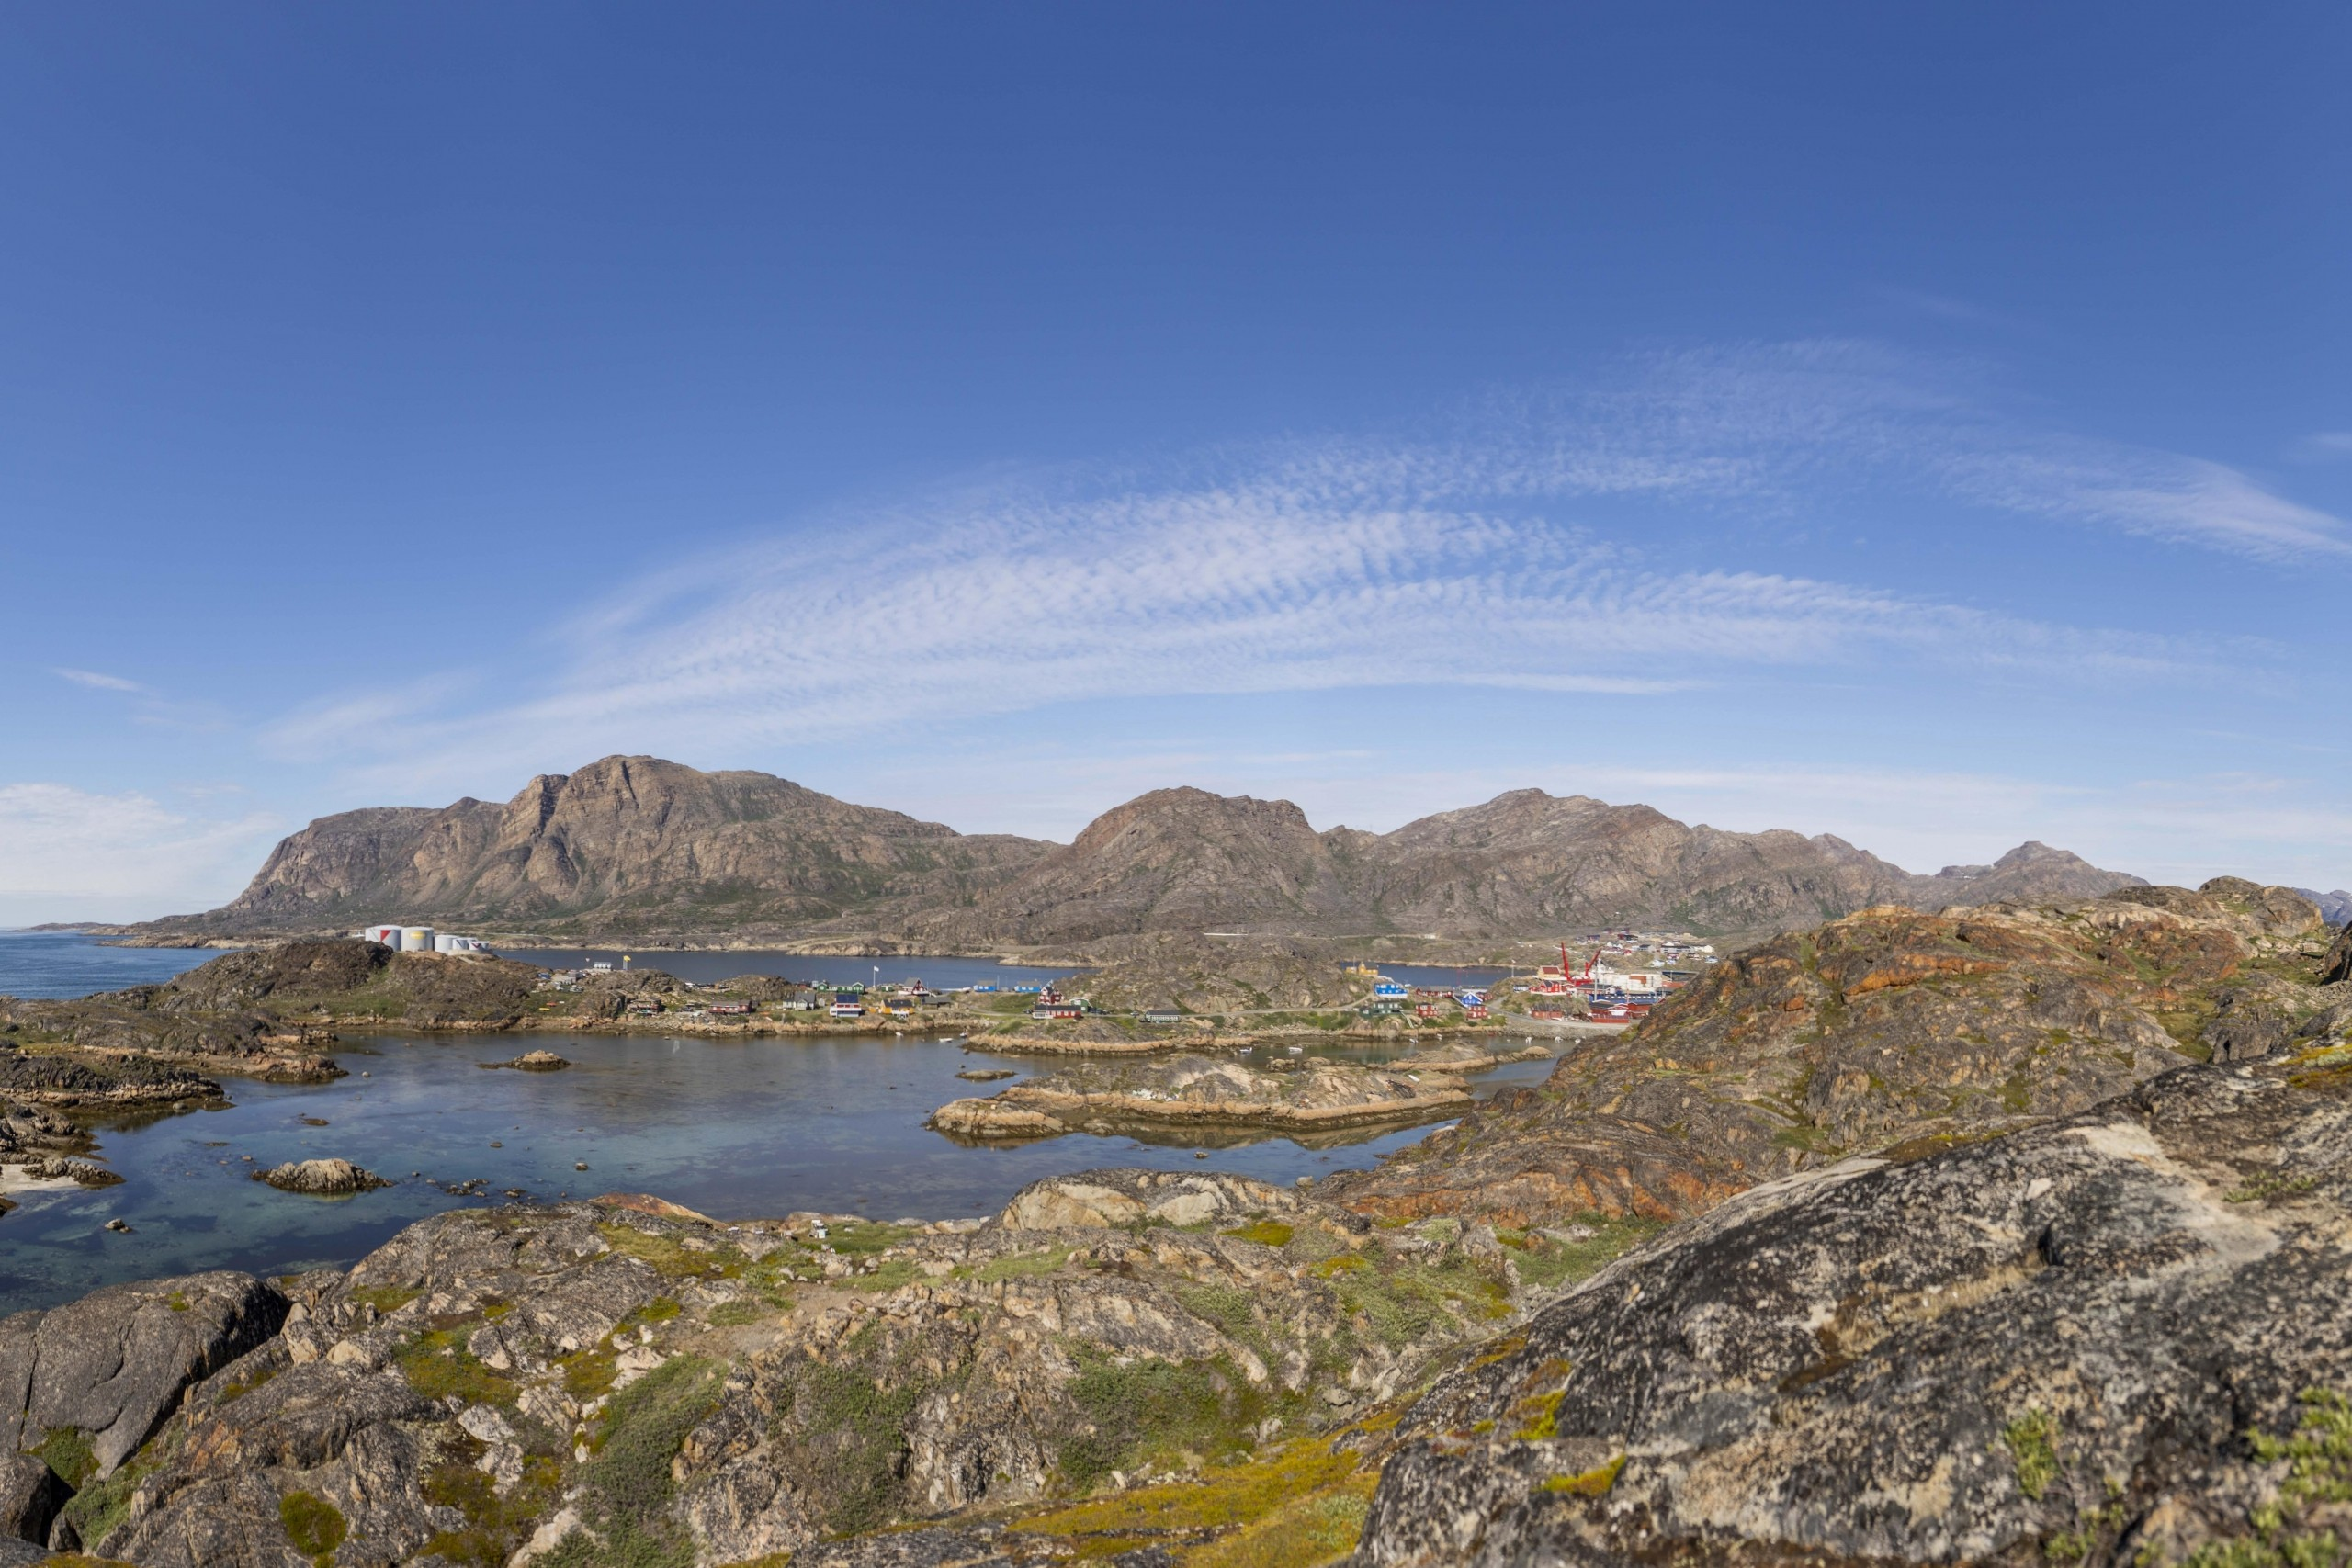 Colourful Houses View 2 in Sisimiut. Photo by Aningaaq R Carlsen - Visit Greenland